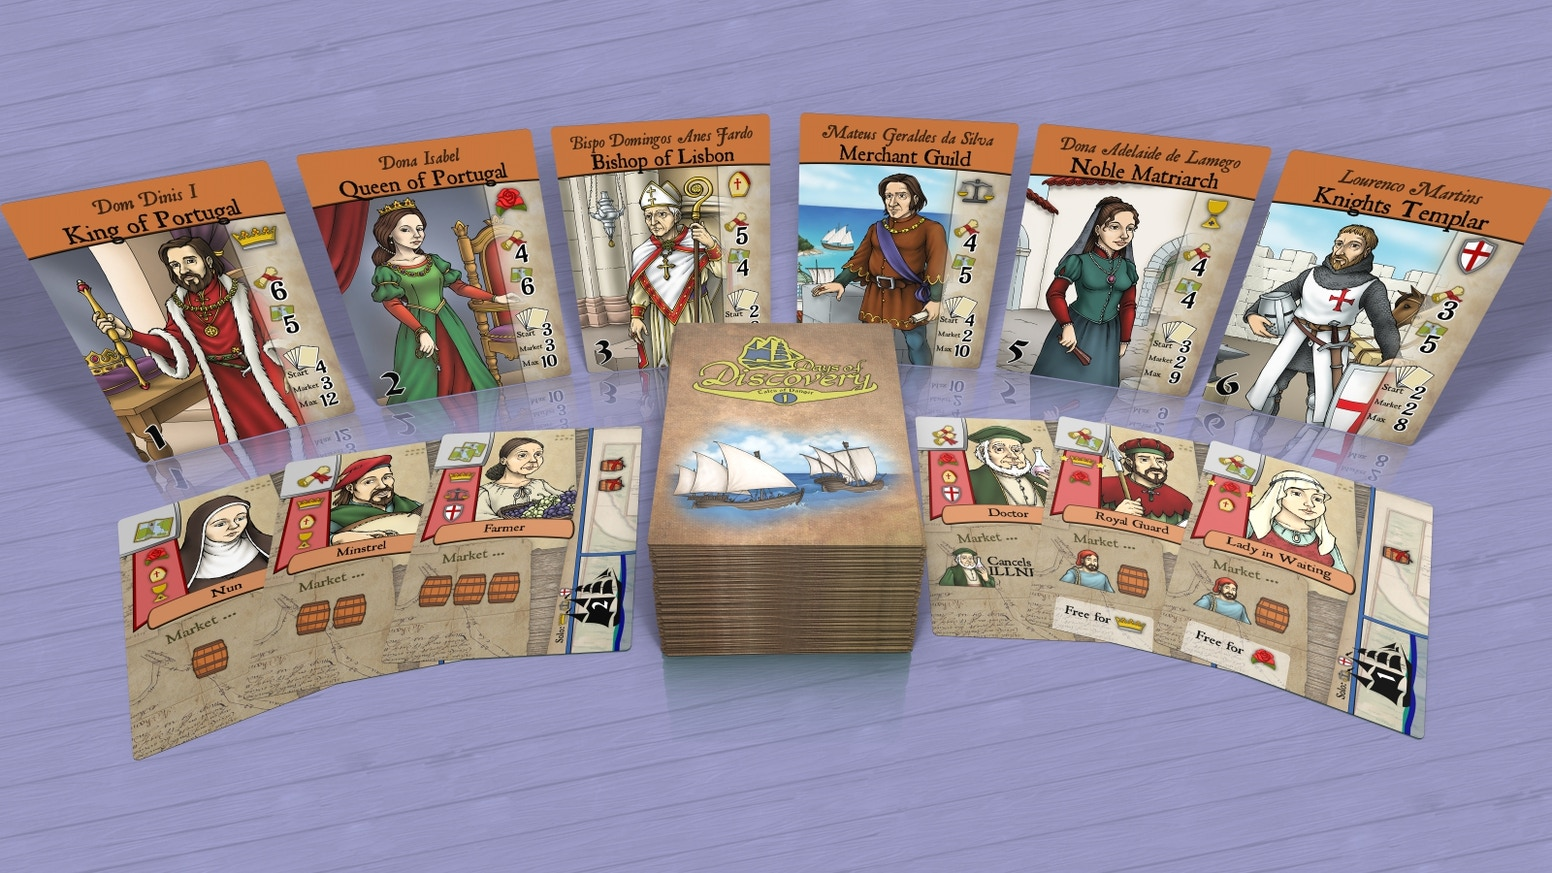 Discover a new legendary land in this 3-act card game for 1-6 players, set in Portugal in 1290. The first game in a multi-game series.